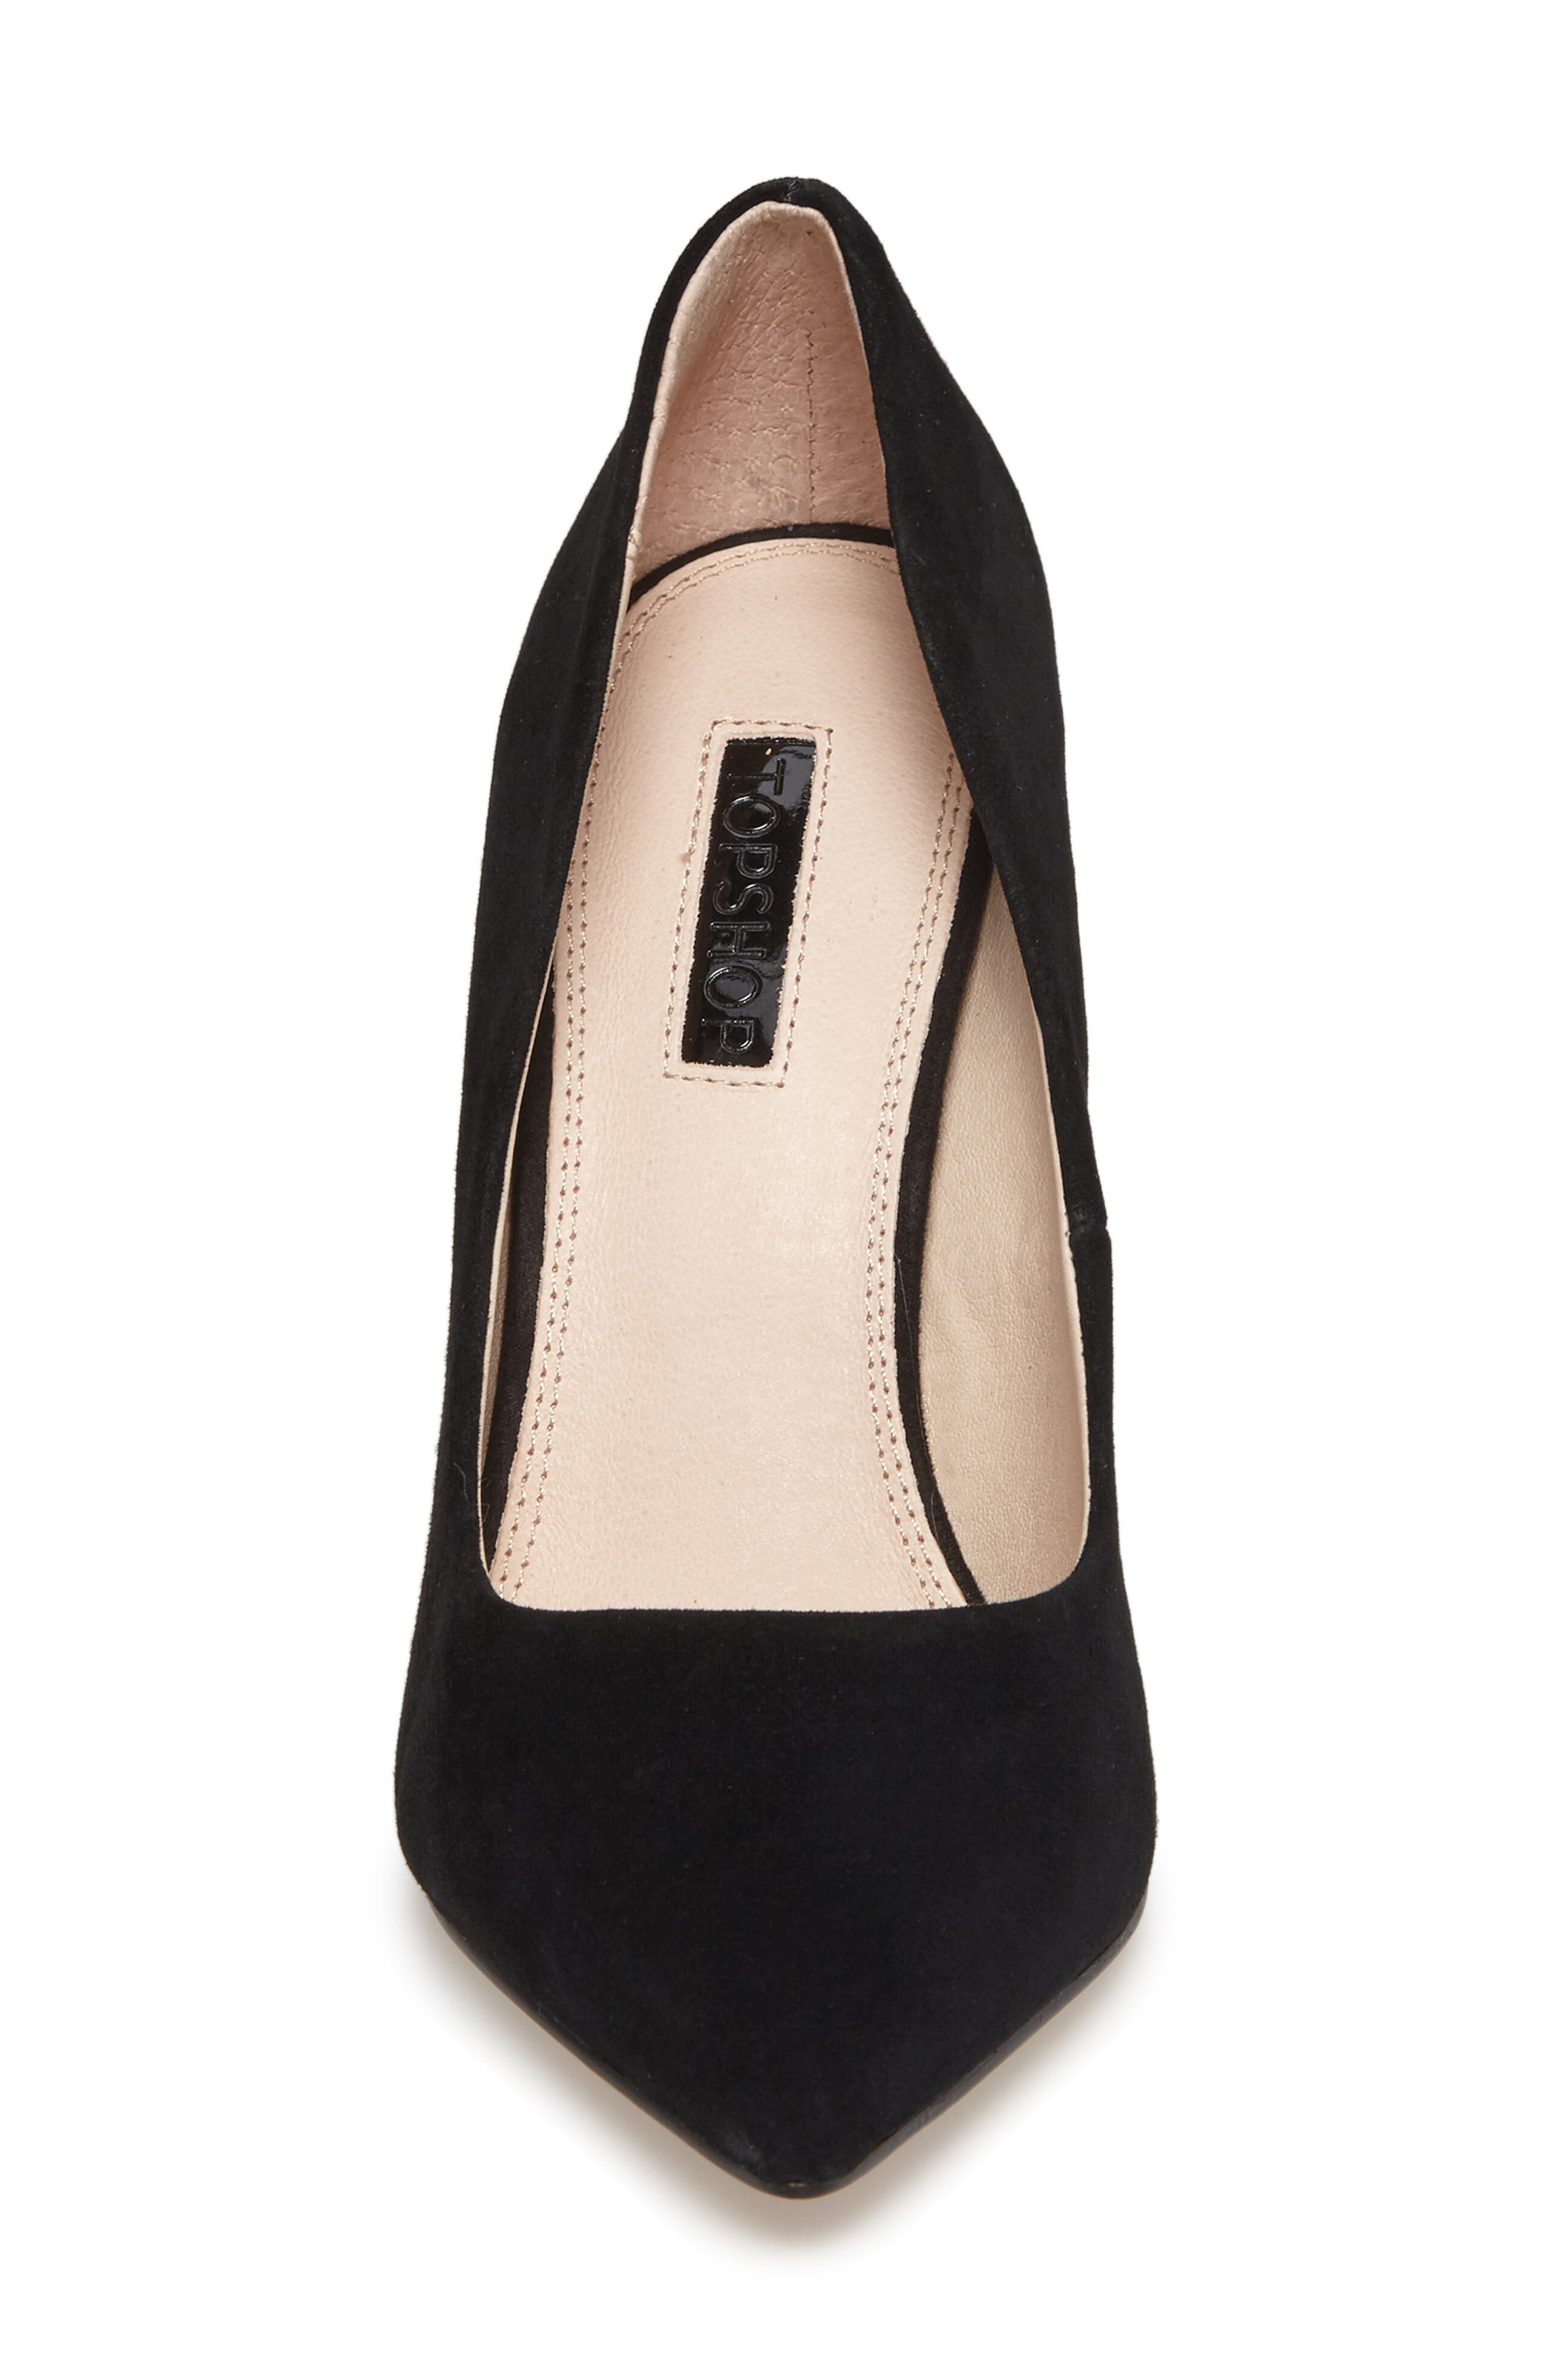 TOPSHOP,                             Grammer Pointy Toe Pump,                             Alternate thumbnail 4, color,                             001